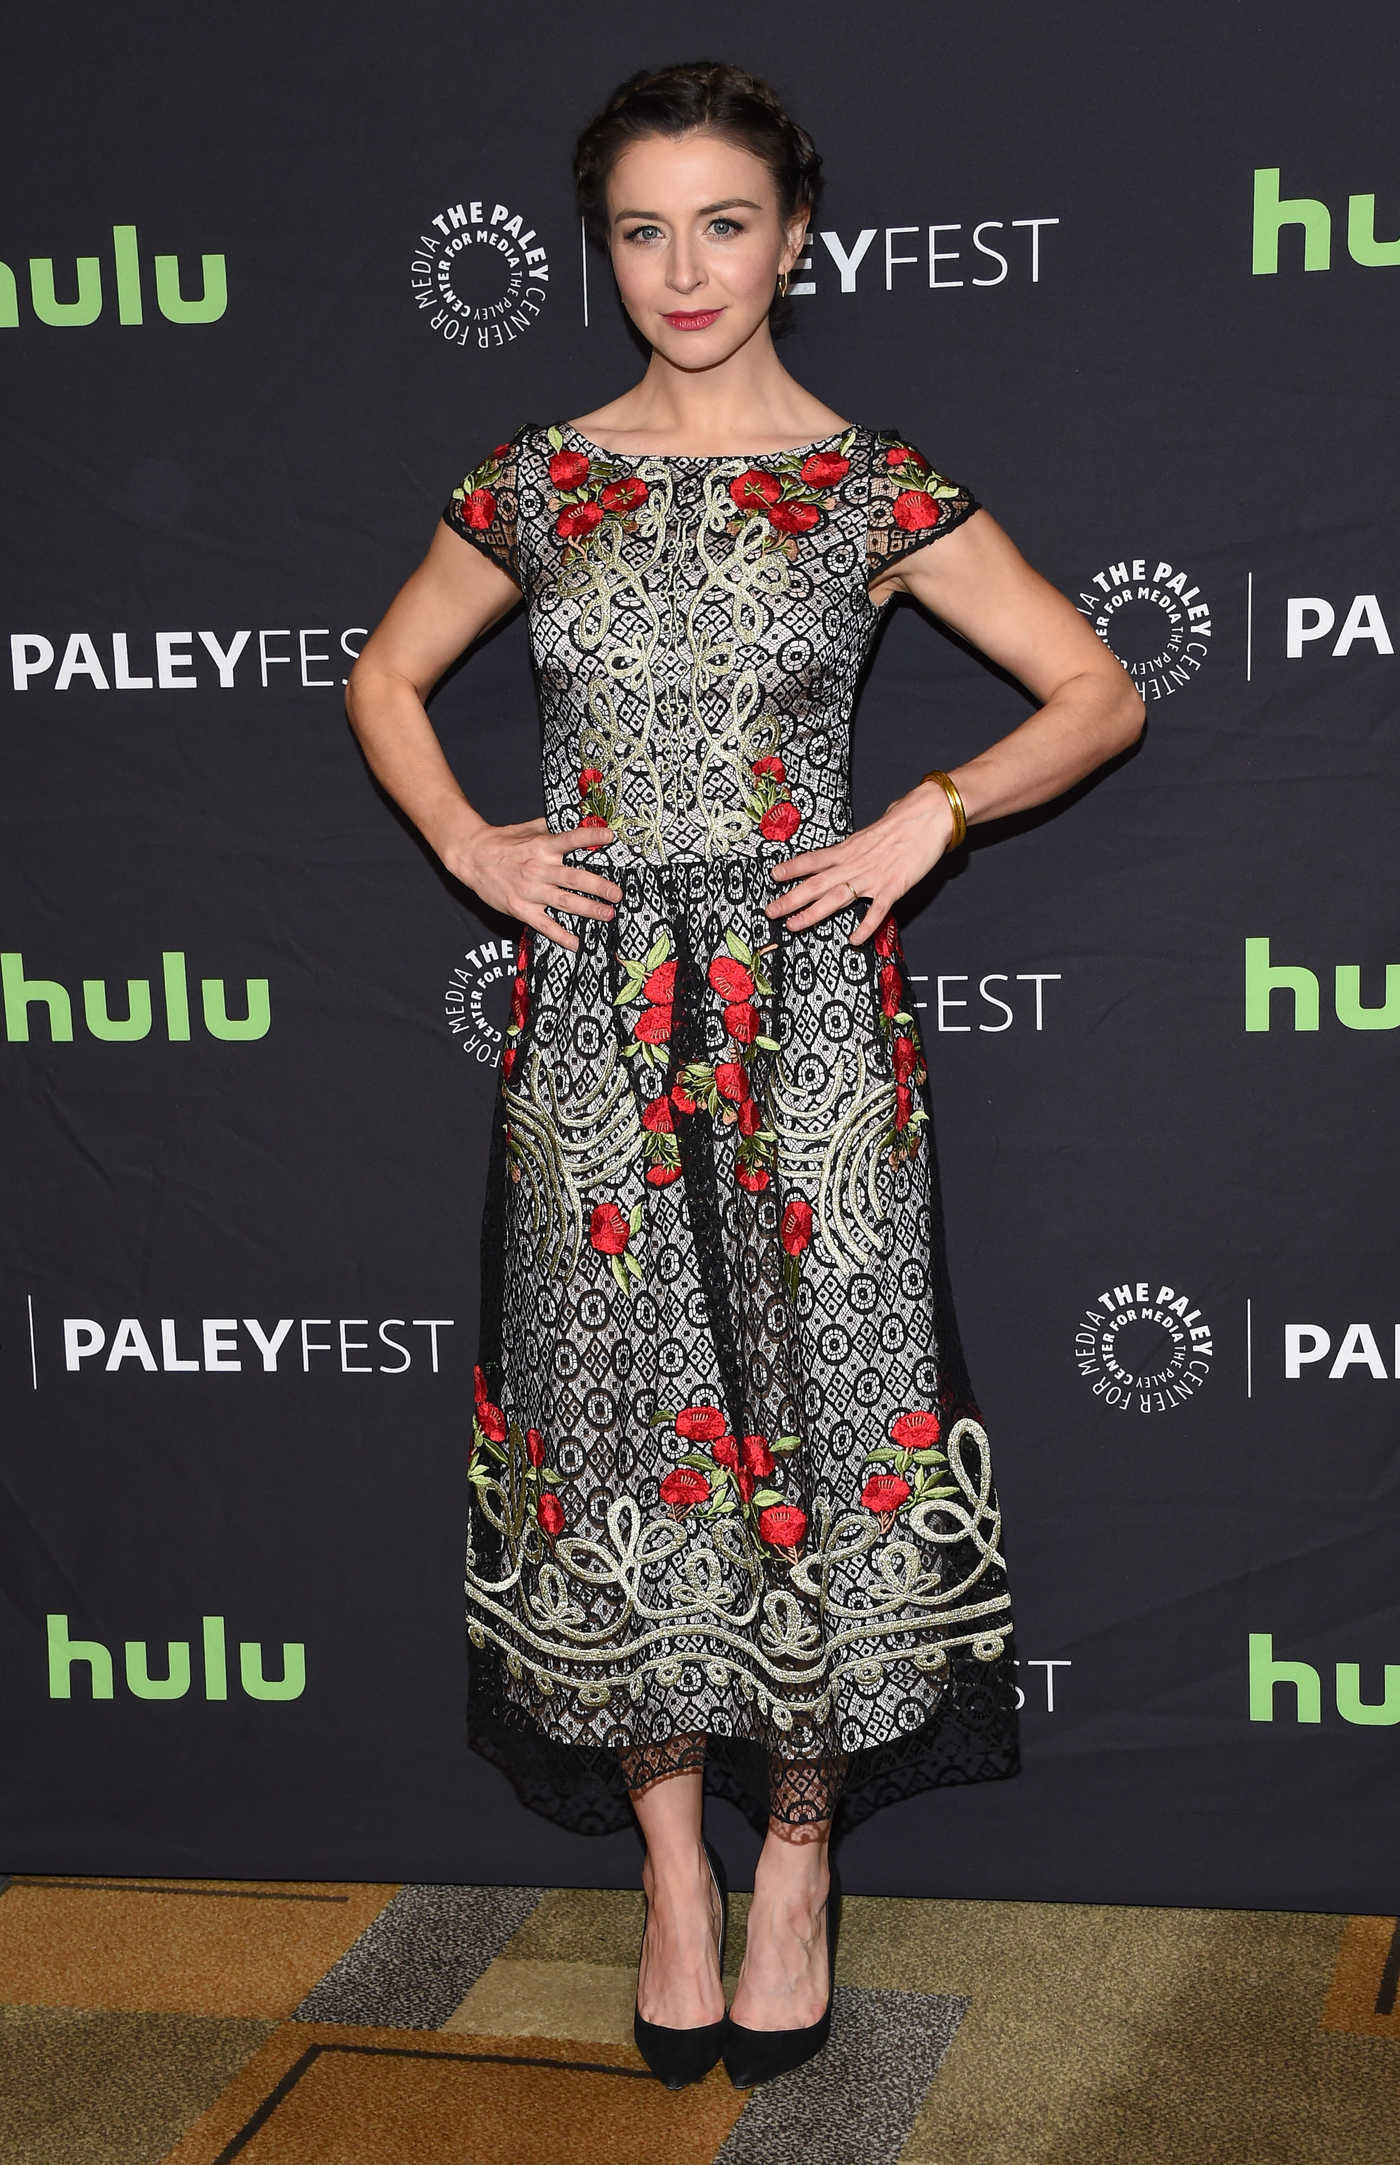 Caterina Scorsone at the 34th Annual PaleyFest in Los Angeles 03/19/2017